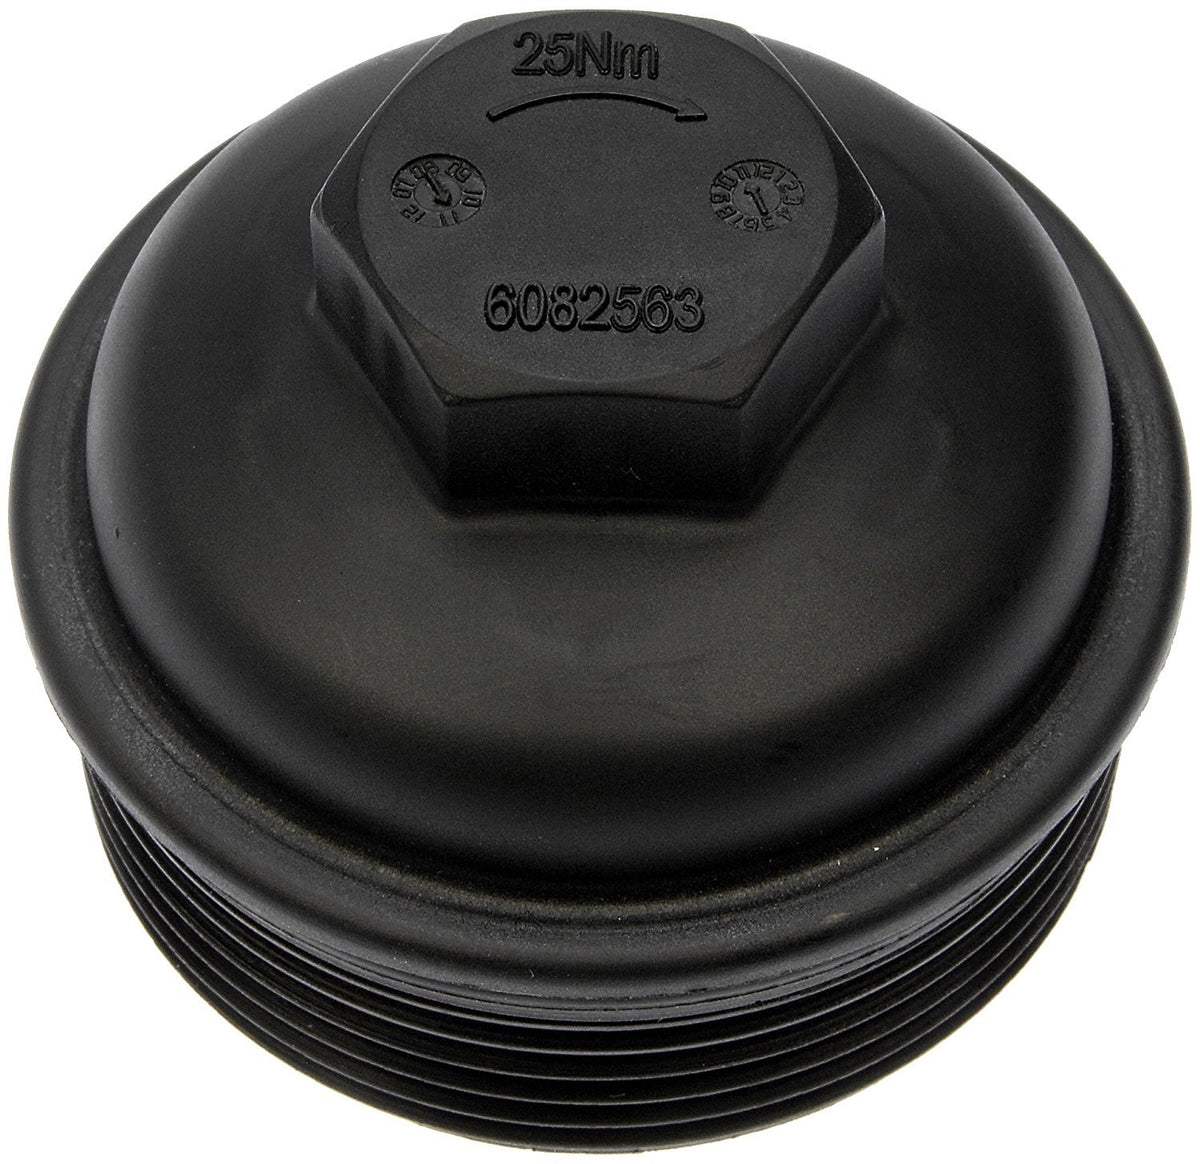 compatible oil filter cap for 2009 chevrolet hhr l4 122 2. Black Bedroom Furniture Sets. Home Design Ideas